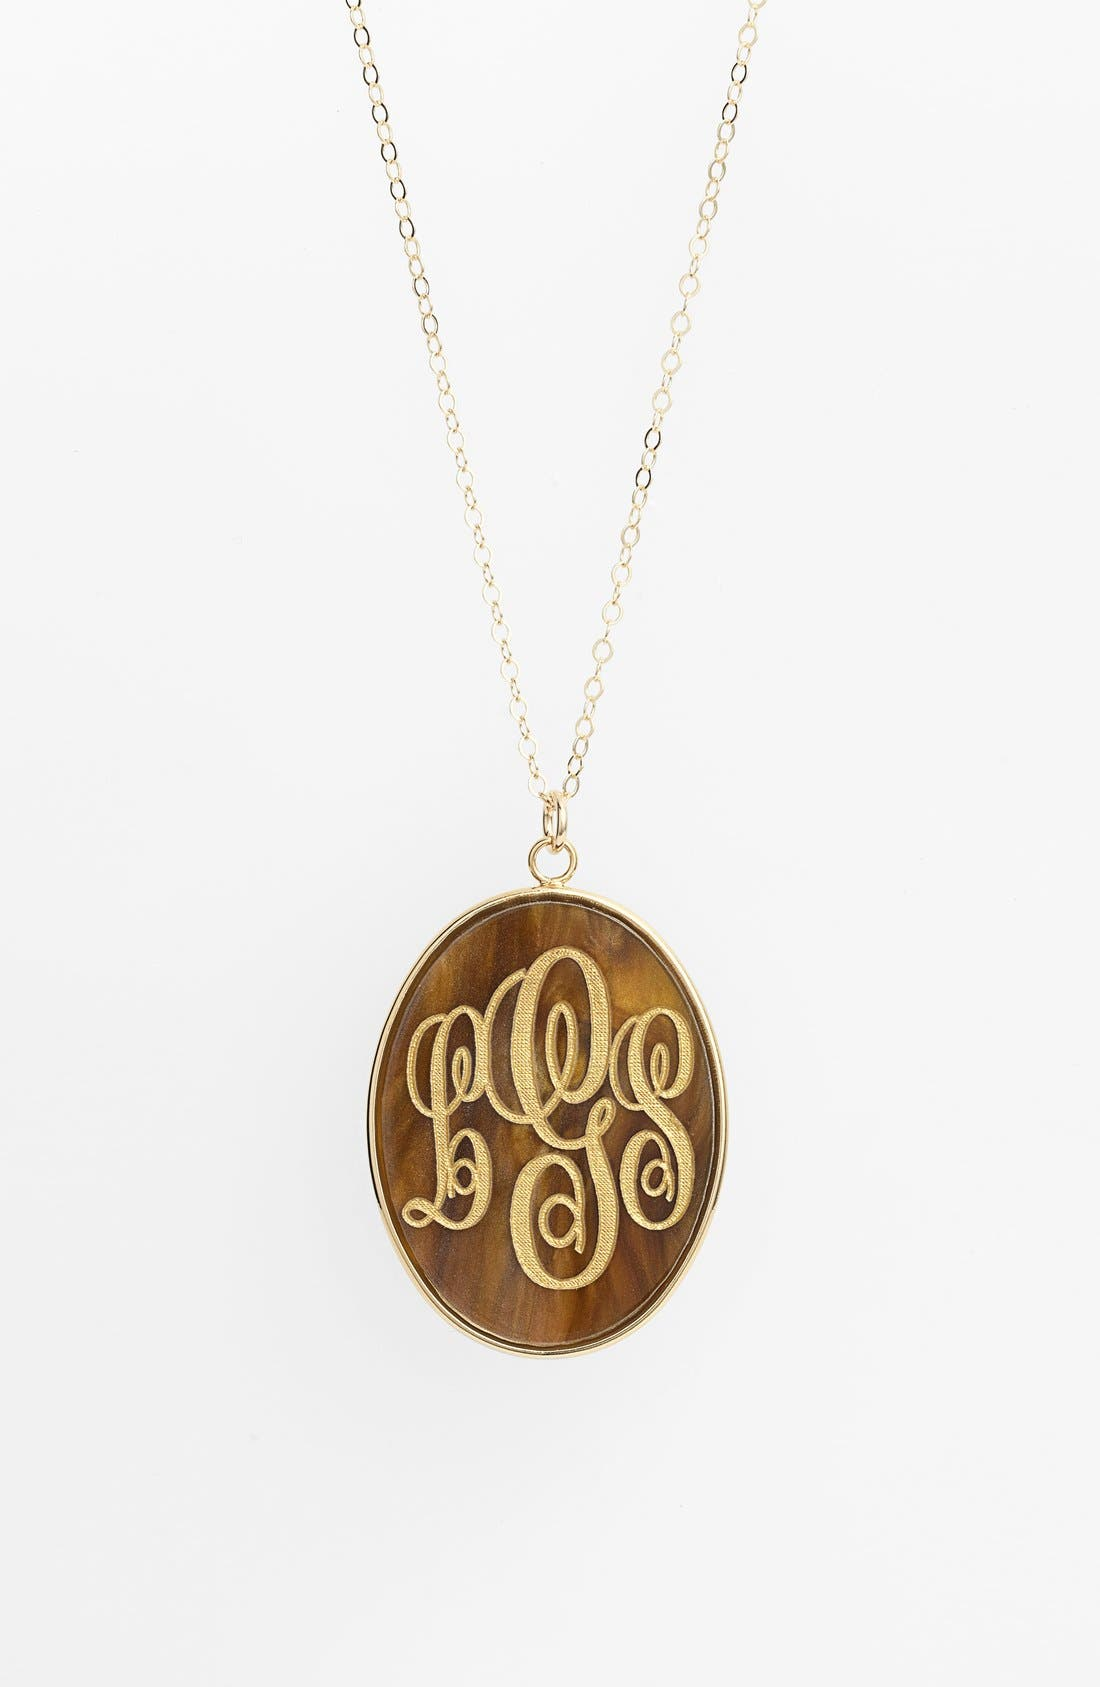 'Vineyard' Personalized Monogram Oval Pendant Necklace,                             Alternate thumbnail 2, color,                             TIGERS EYE